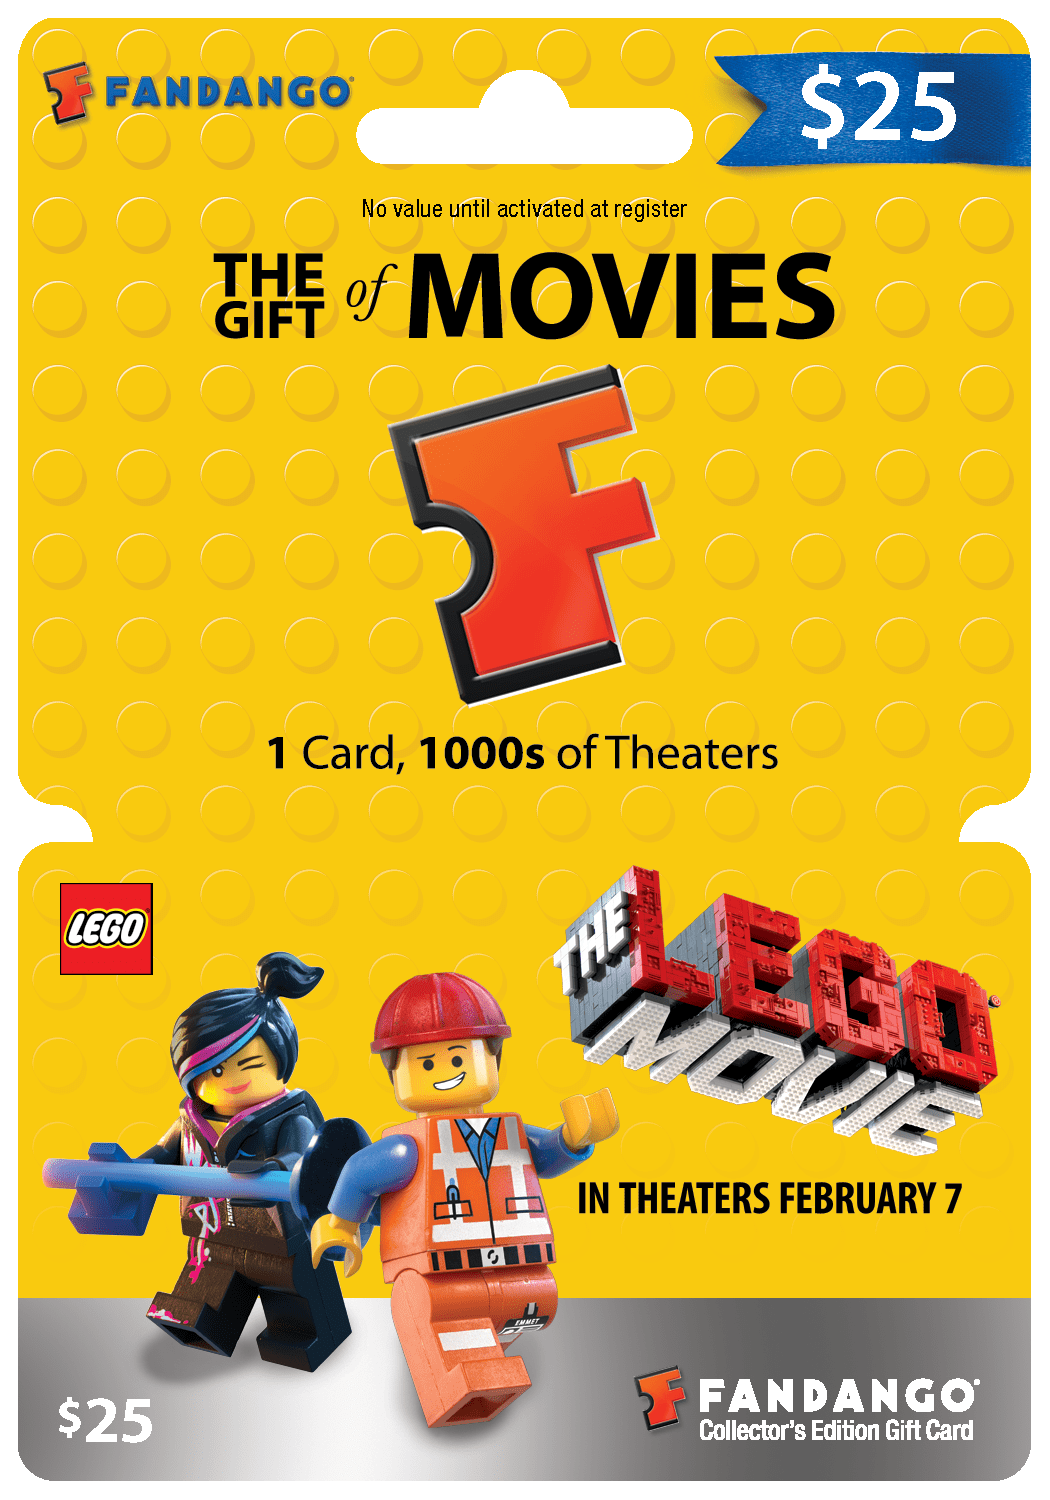 fandango-gift-cards-see-lego-movie-giveaway